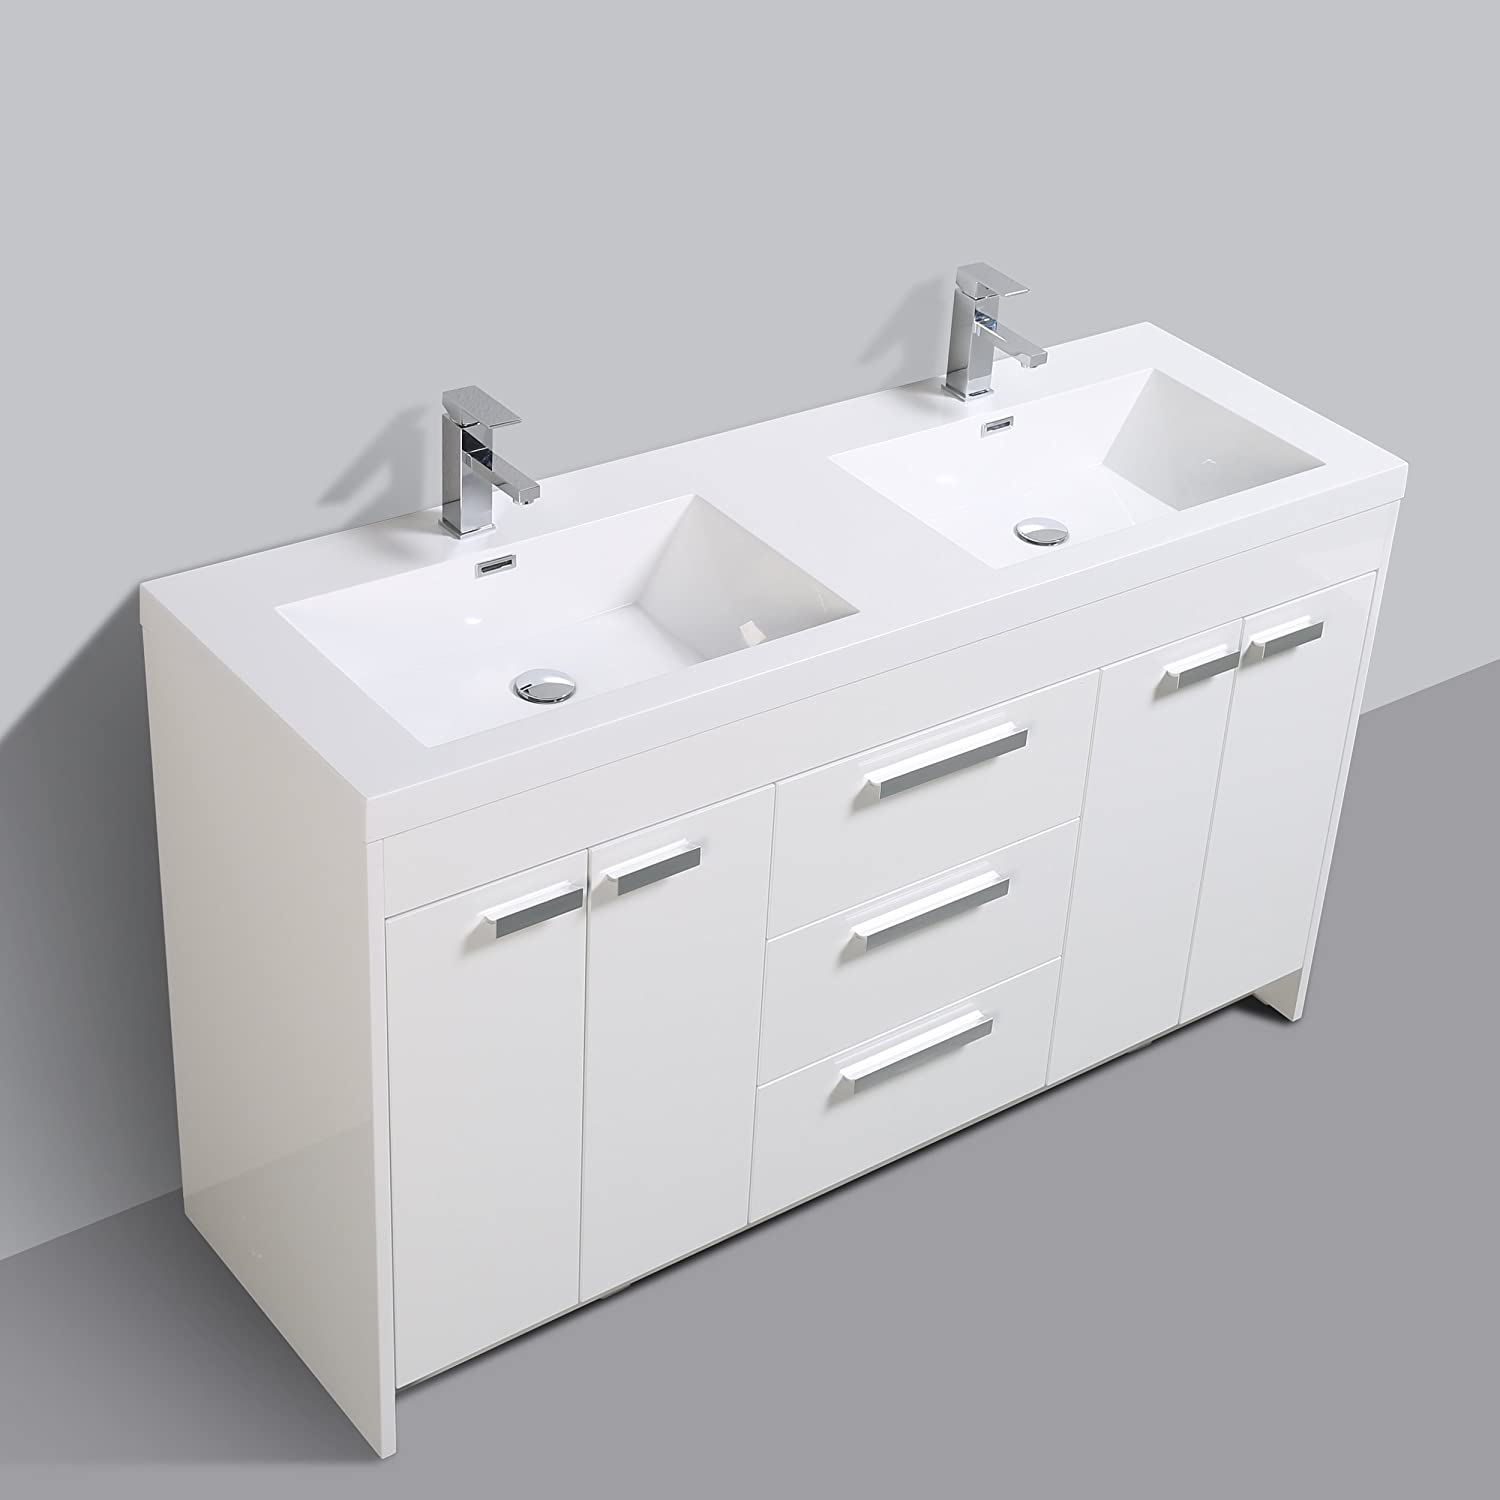 Buy Eviva Lugano 60 Inch White Modern Double Sink Integrated Acrylic Top Bathroom Vanities 60 Online In Indonesia B019a7vpb6